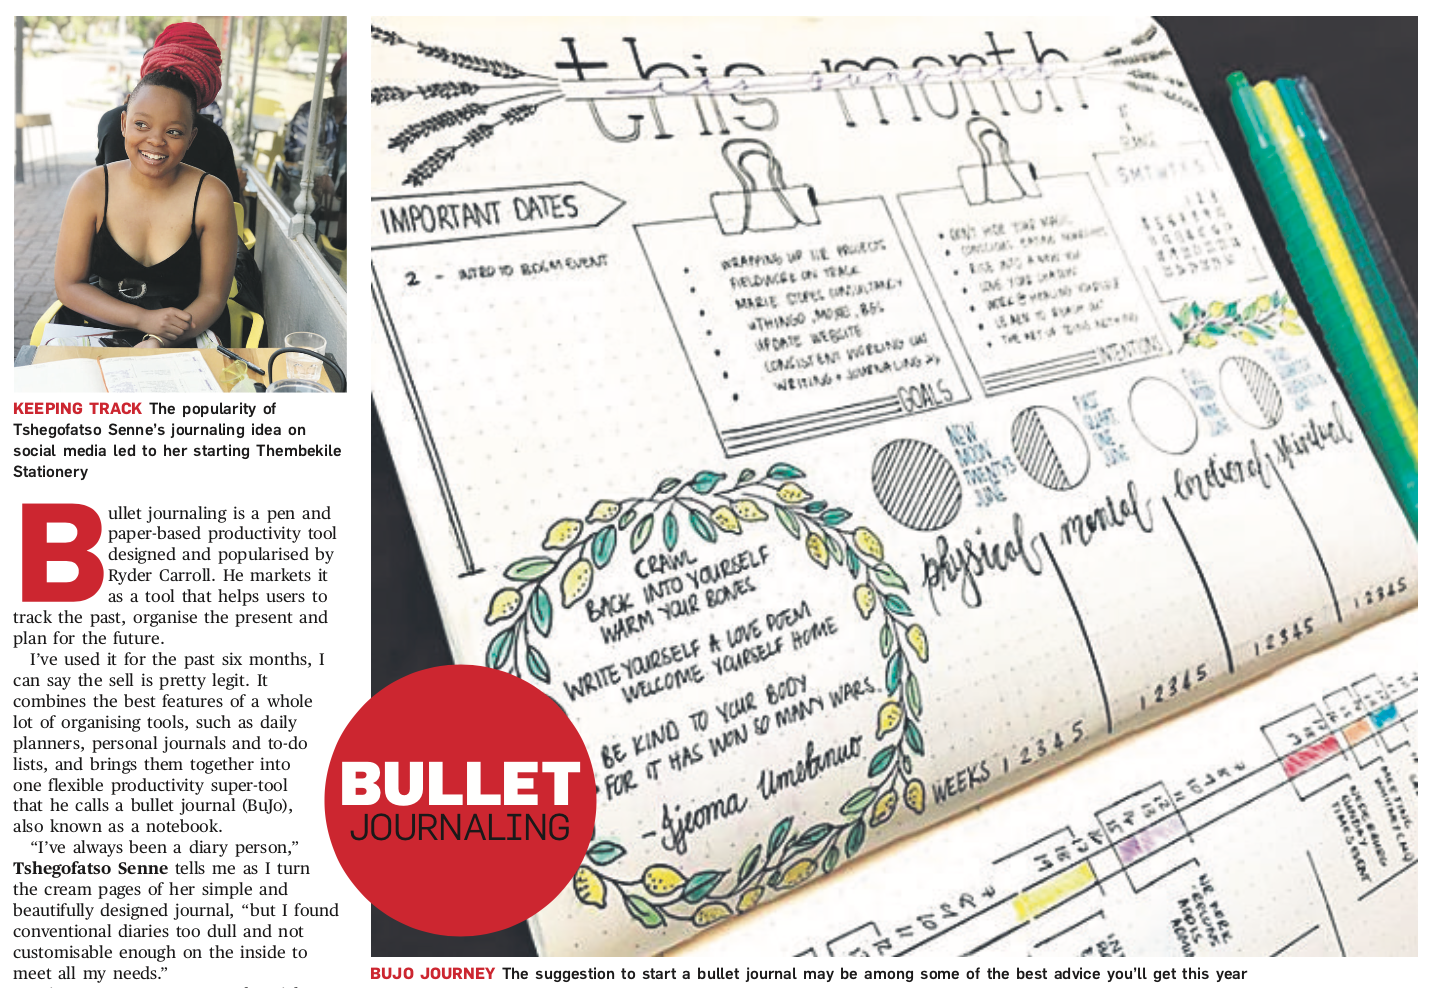 What is a bullet journal and why should you start one?